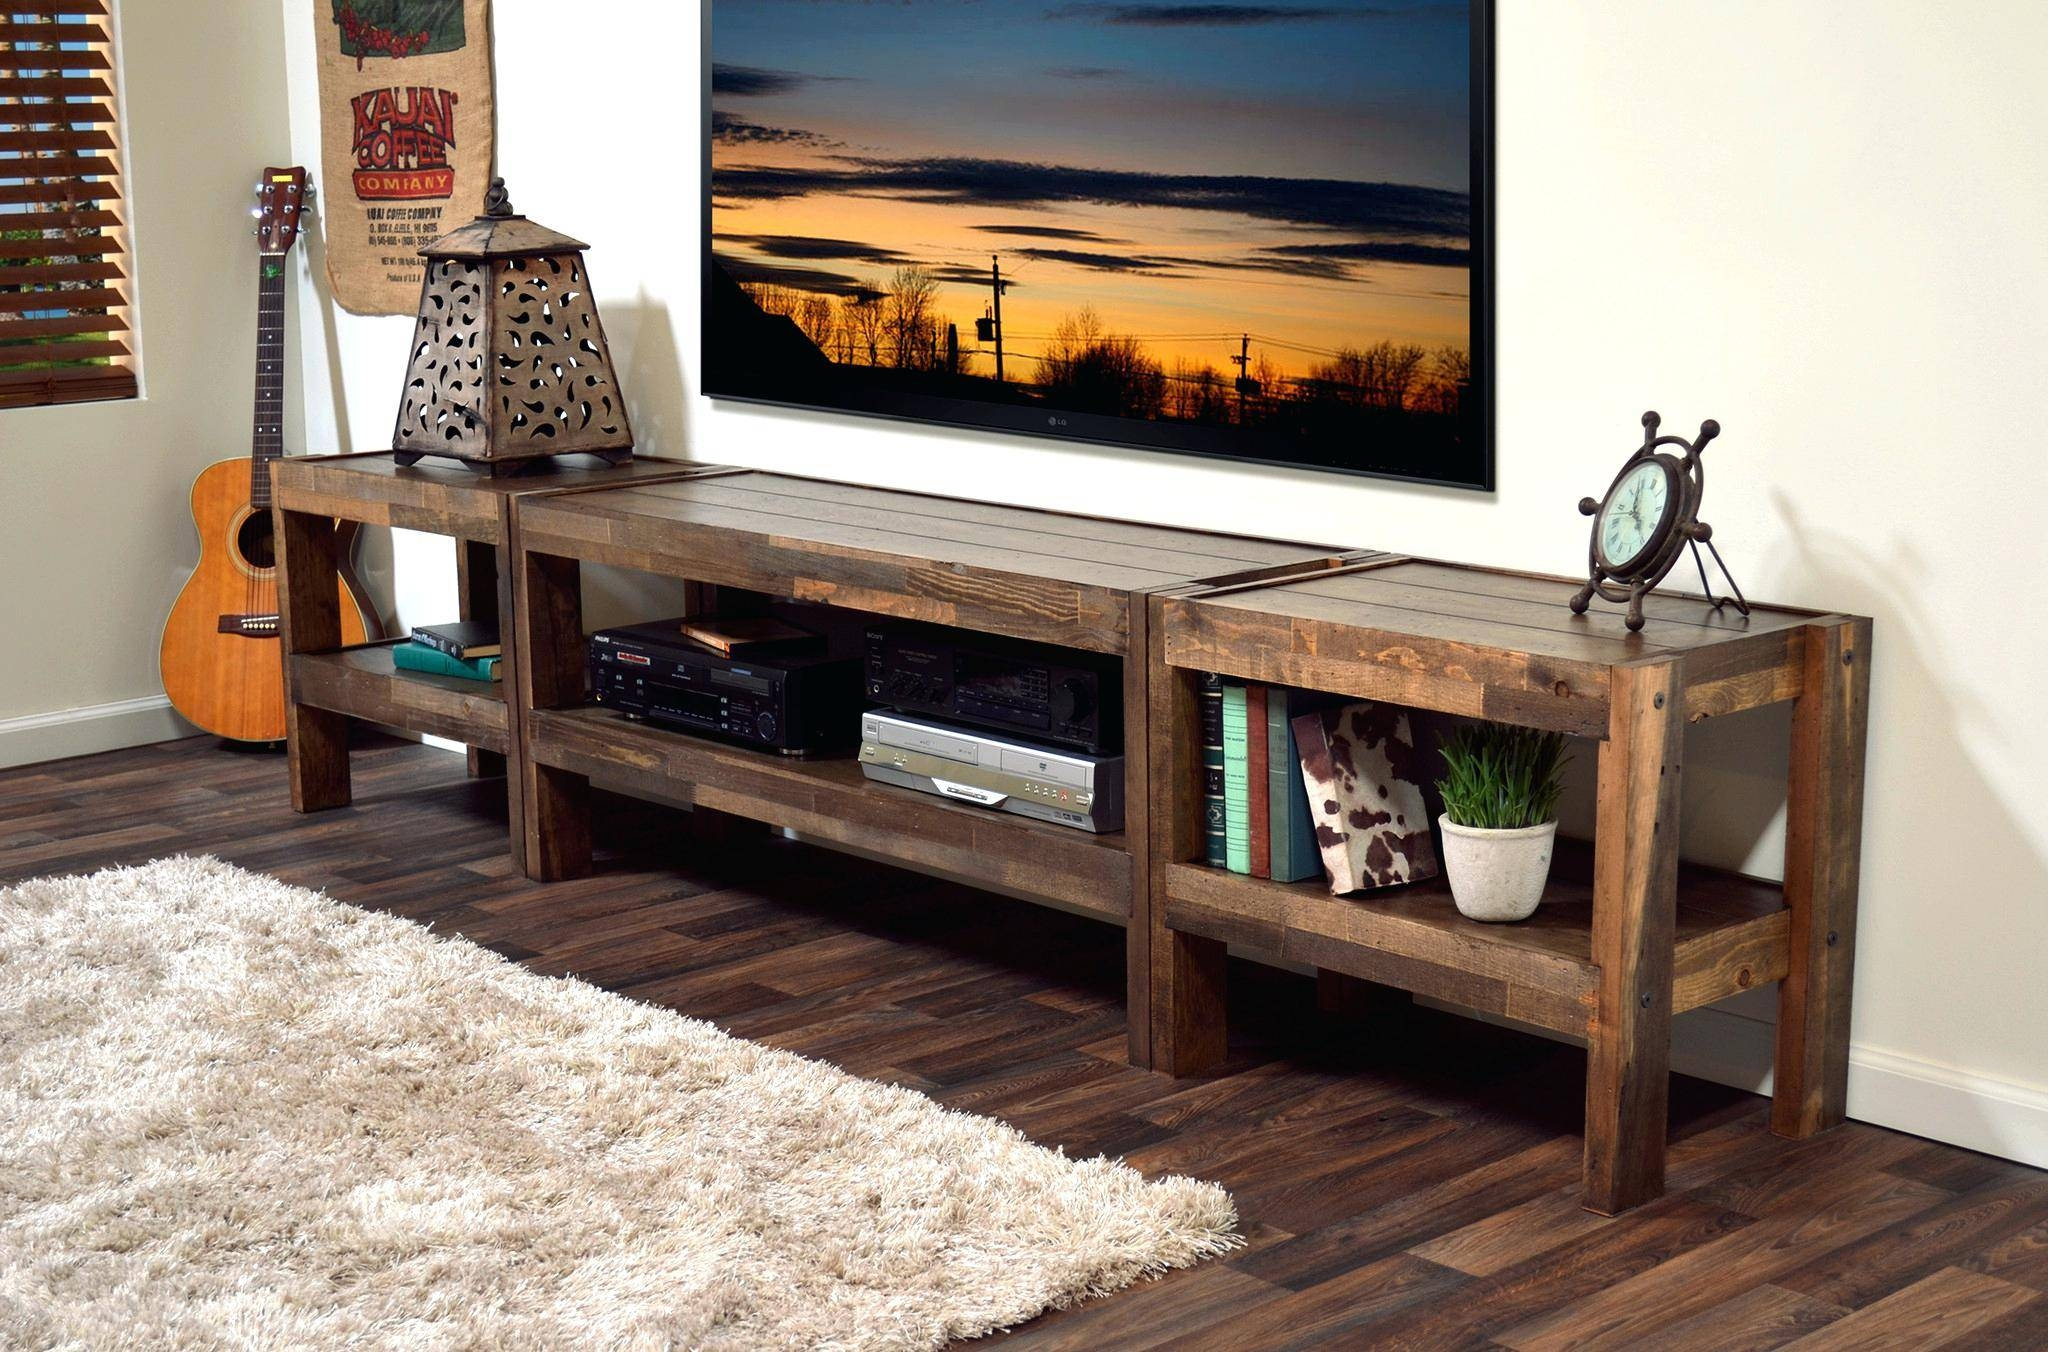 Matching Oak Coffee Table And Tv Stand | Coffee Tables Decoration with Coffee Tables And Tv Stands (Image 14 of 30)